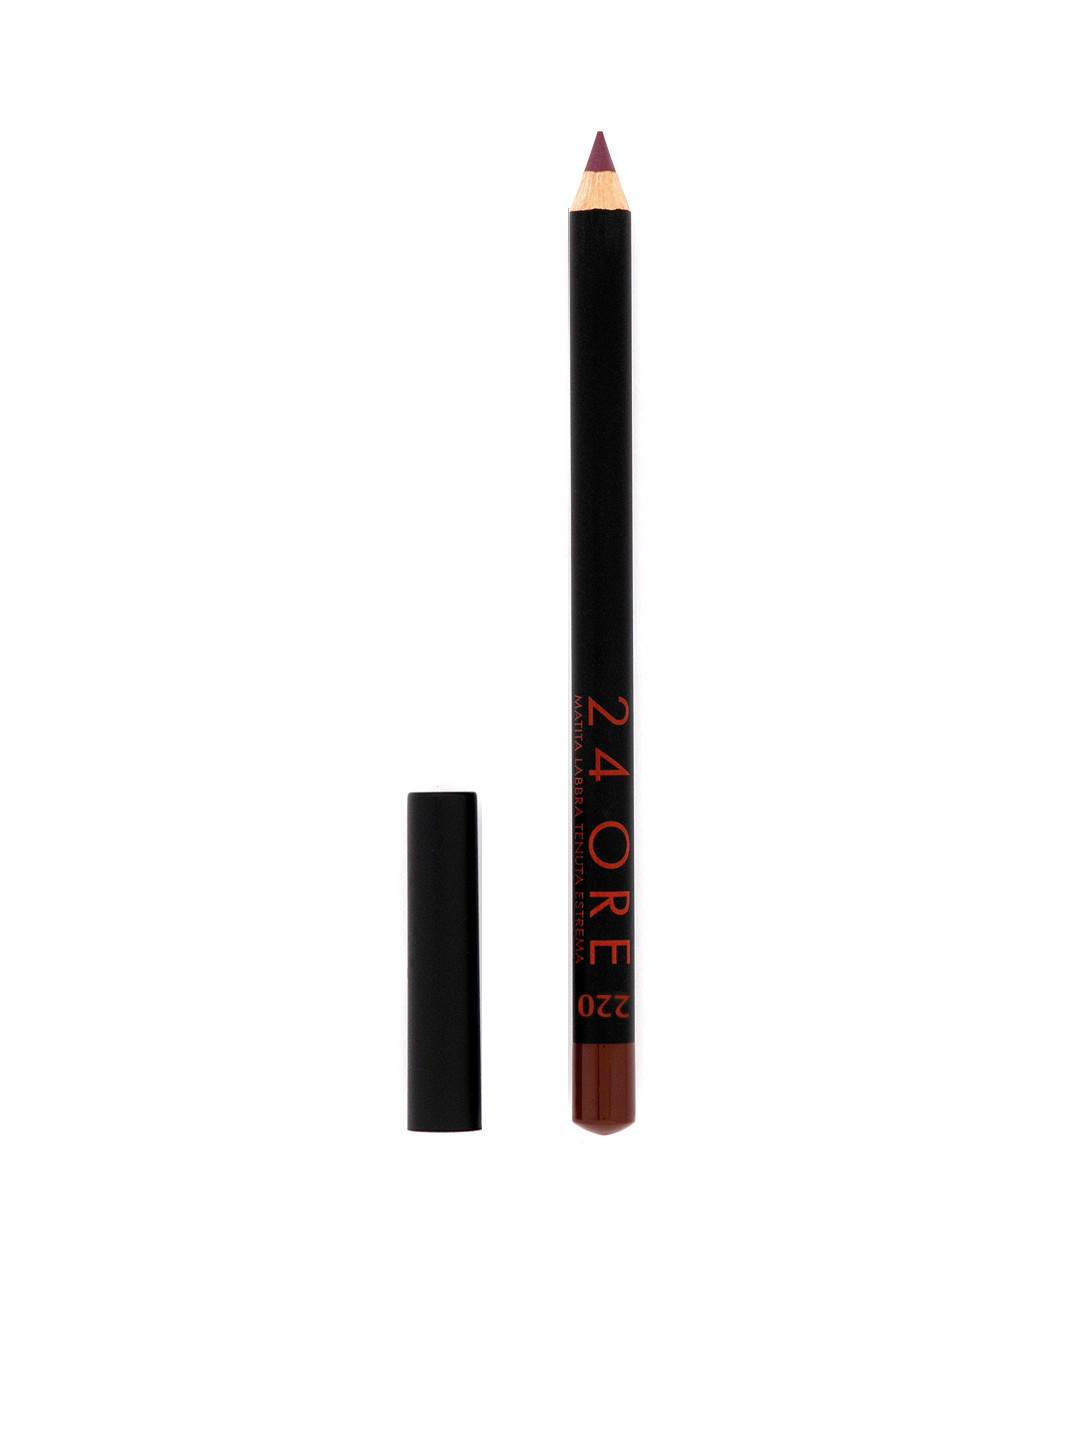 Deborah 24 Ore Lip Liner Pencil, Rs 450